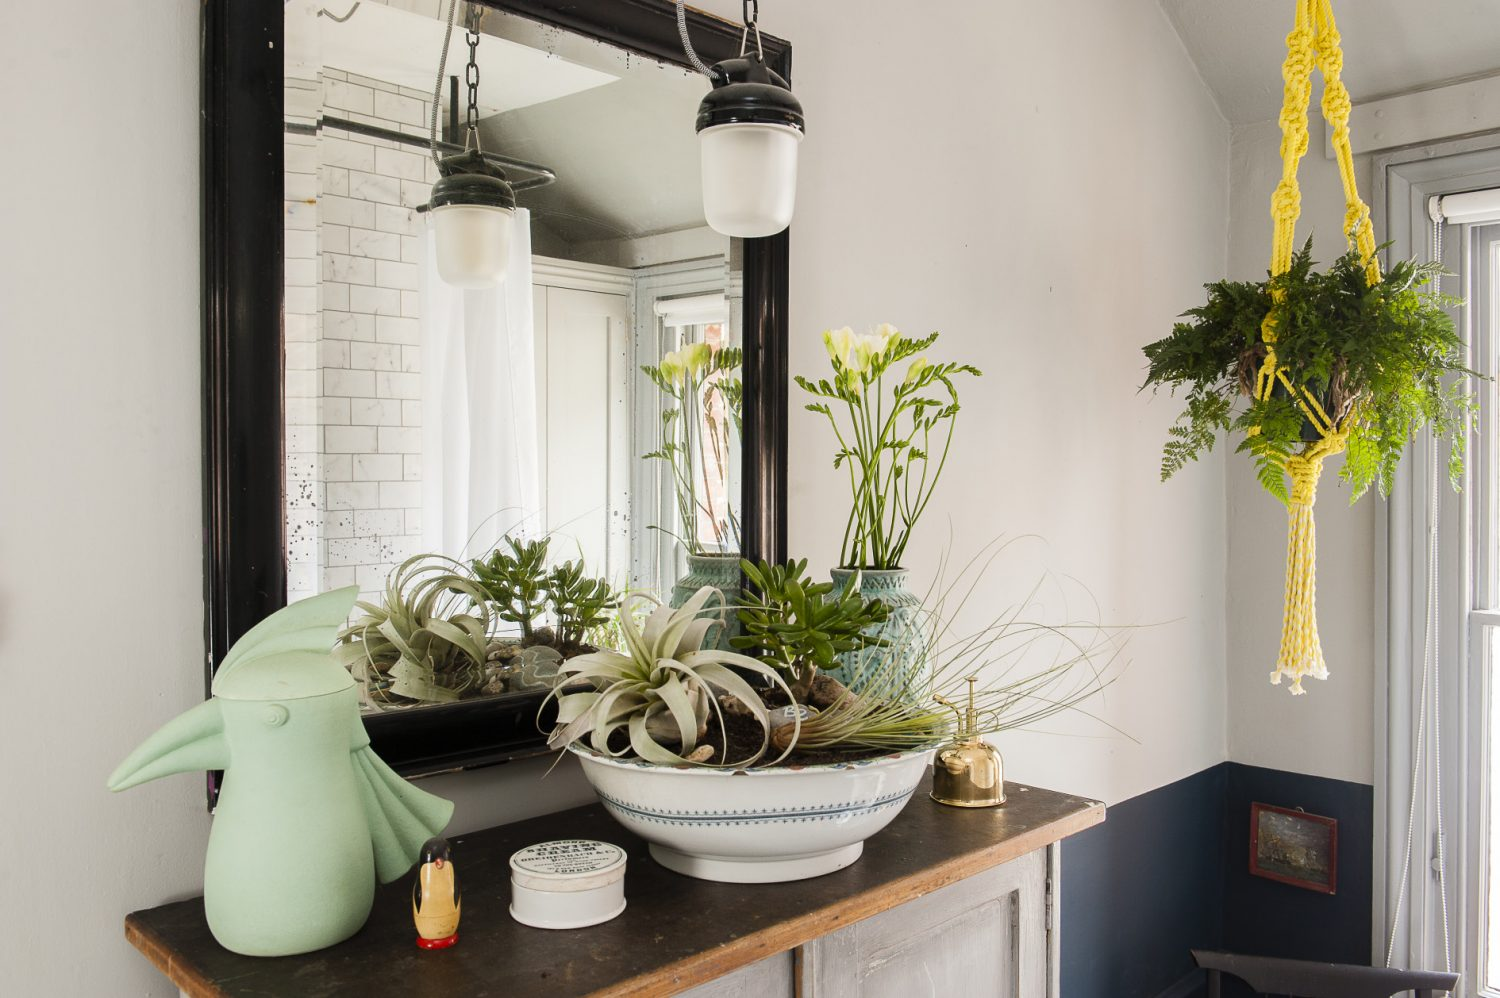 """The bathroom features a bright yellow macrame planter, one of a pair made by James and David. """"We did a course last year. I think the one in the bathroom is probably stronger in terms of the look – that one's David's. I cut the ends too short on mine!"""" says James, modestly."""